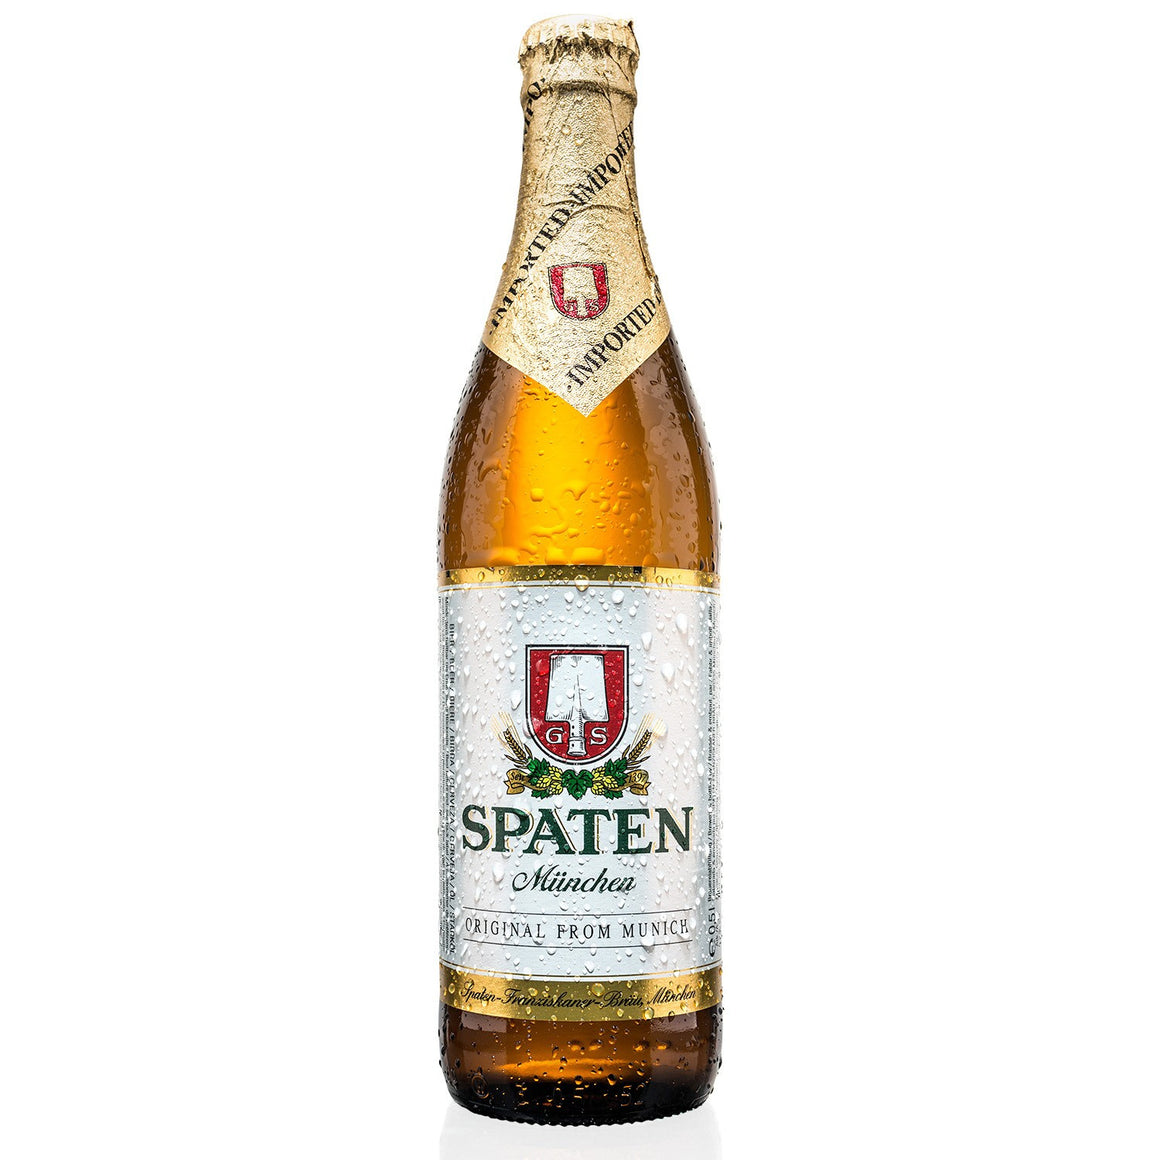 Spaten - Lager - 500ml Bottle